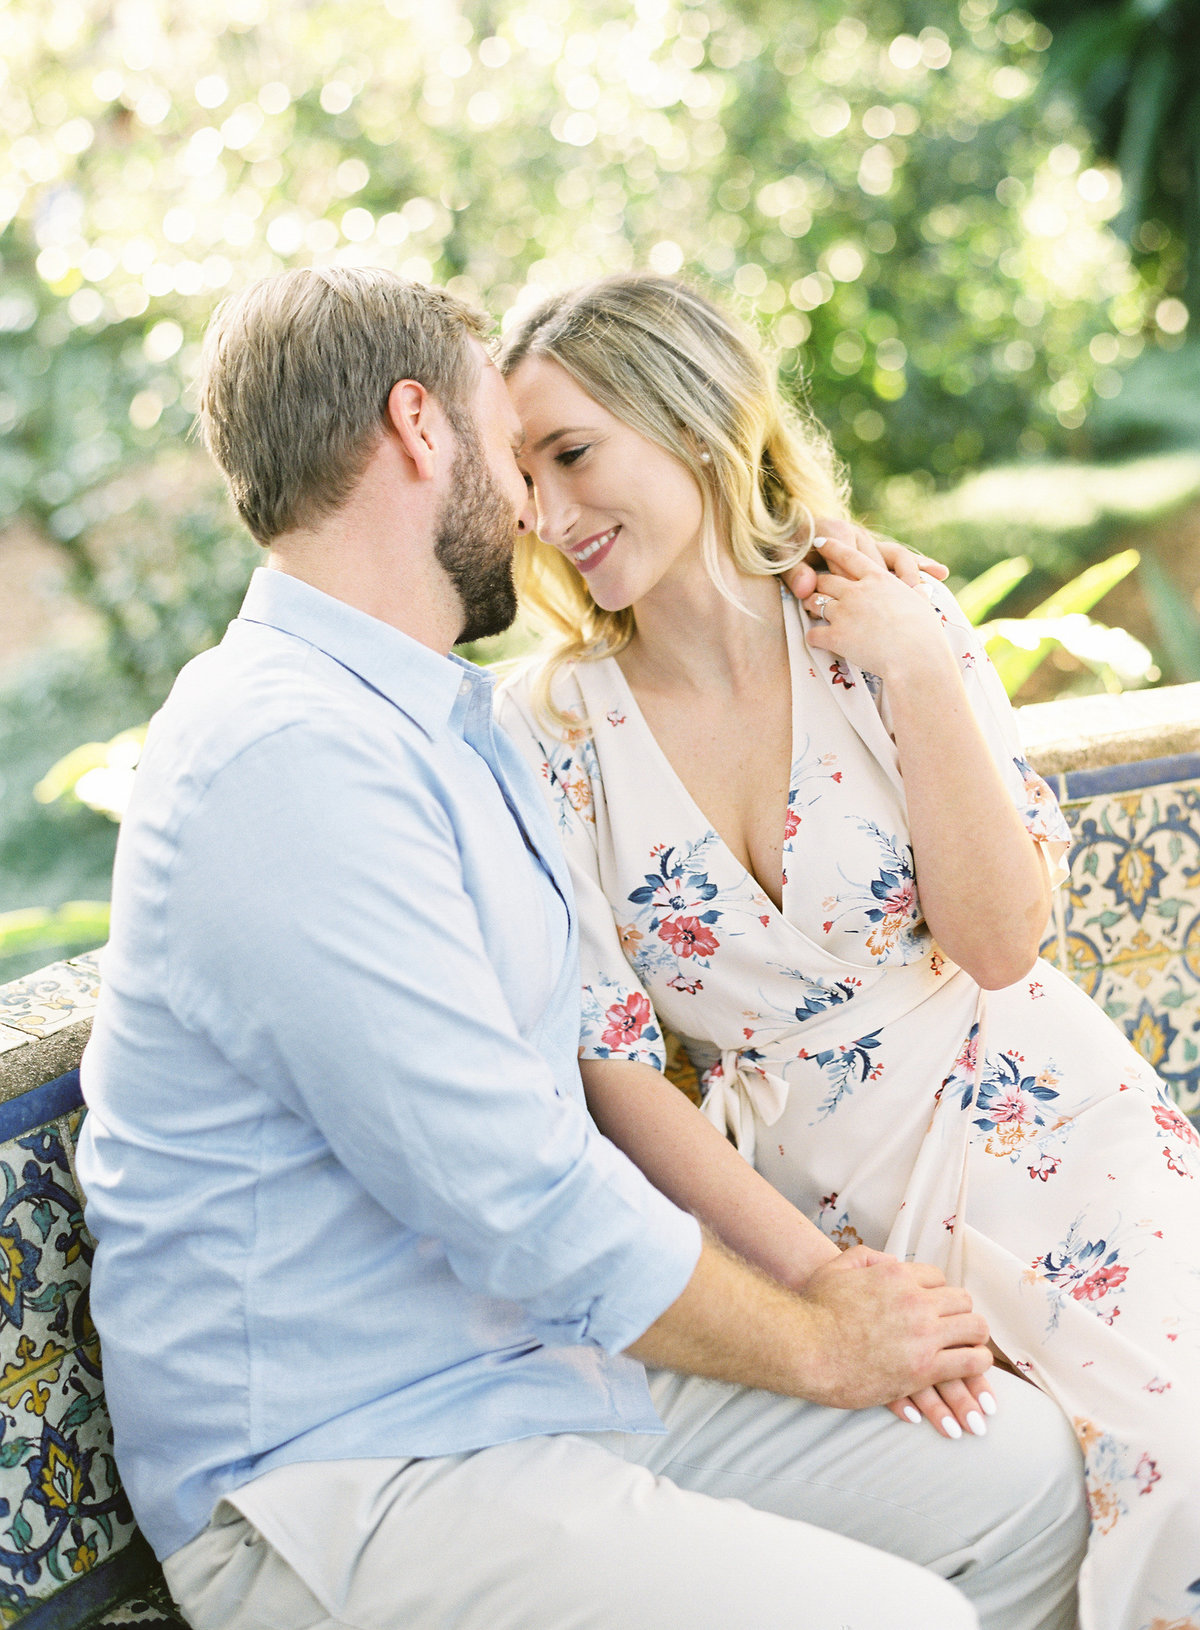 Bok_Tower_Garden_Film_Fine_Art_Engagement_Session-25